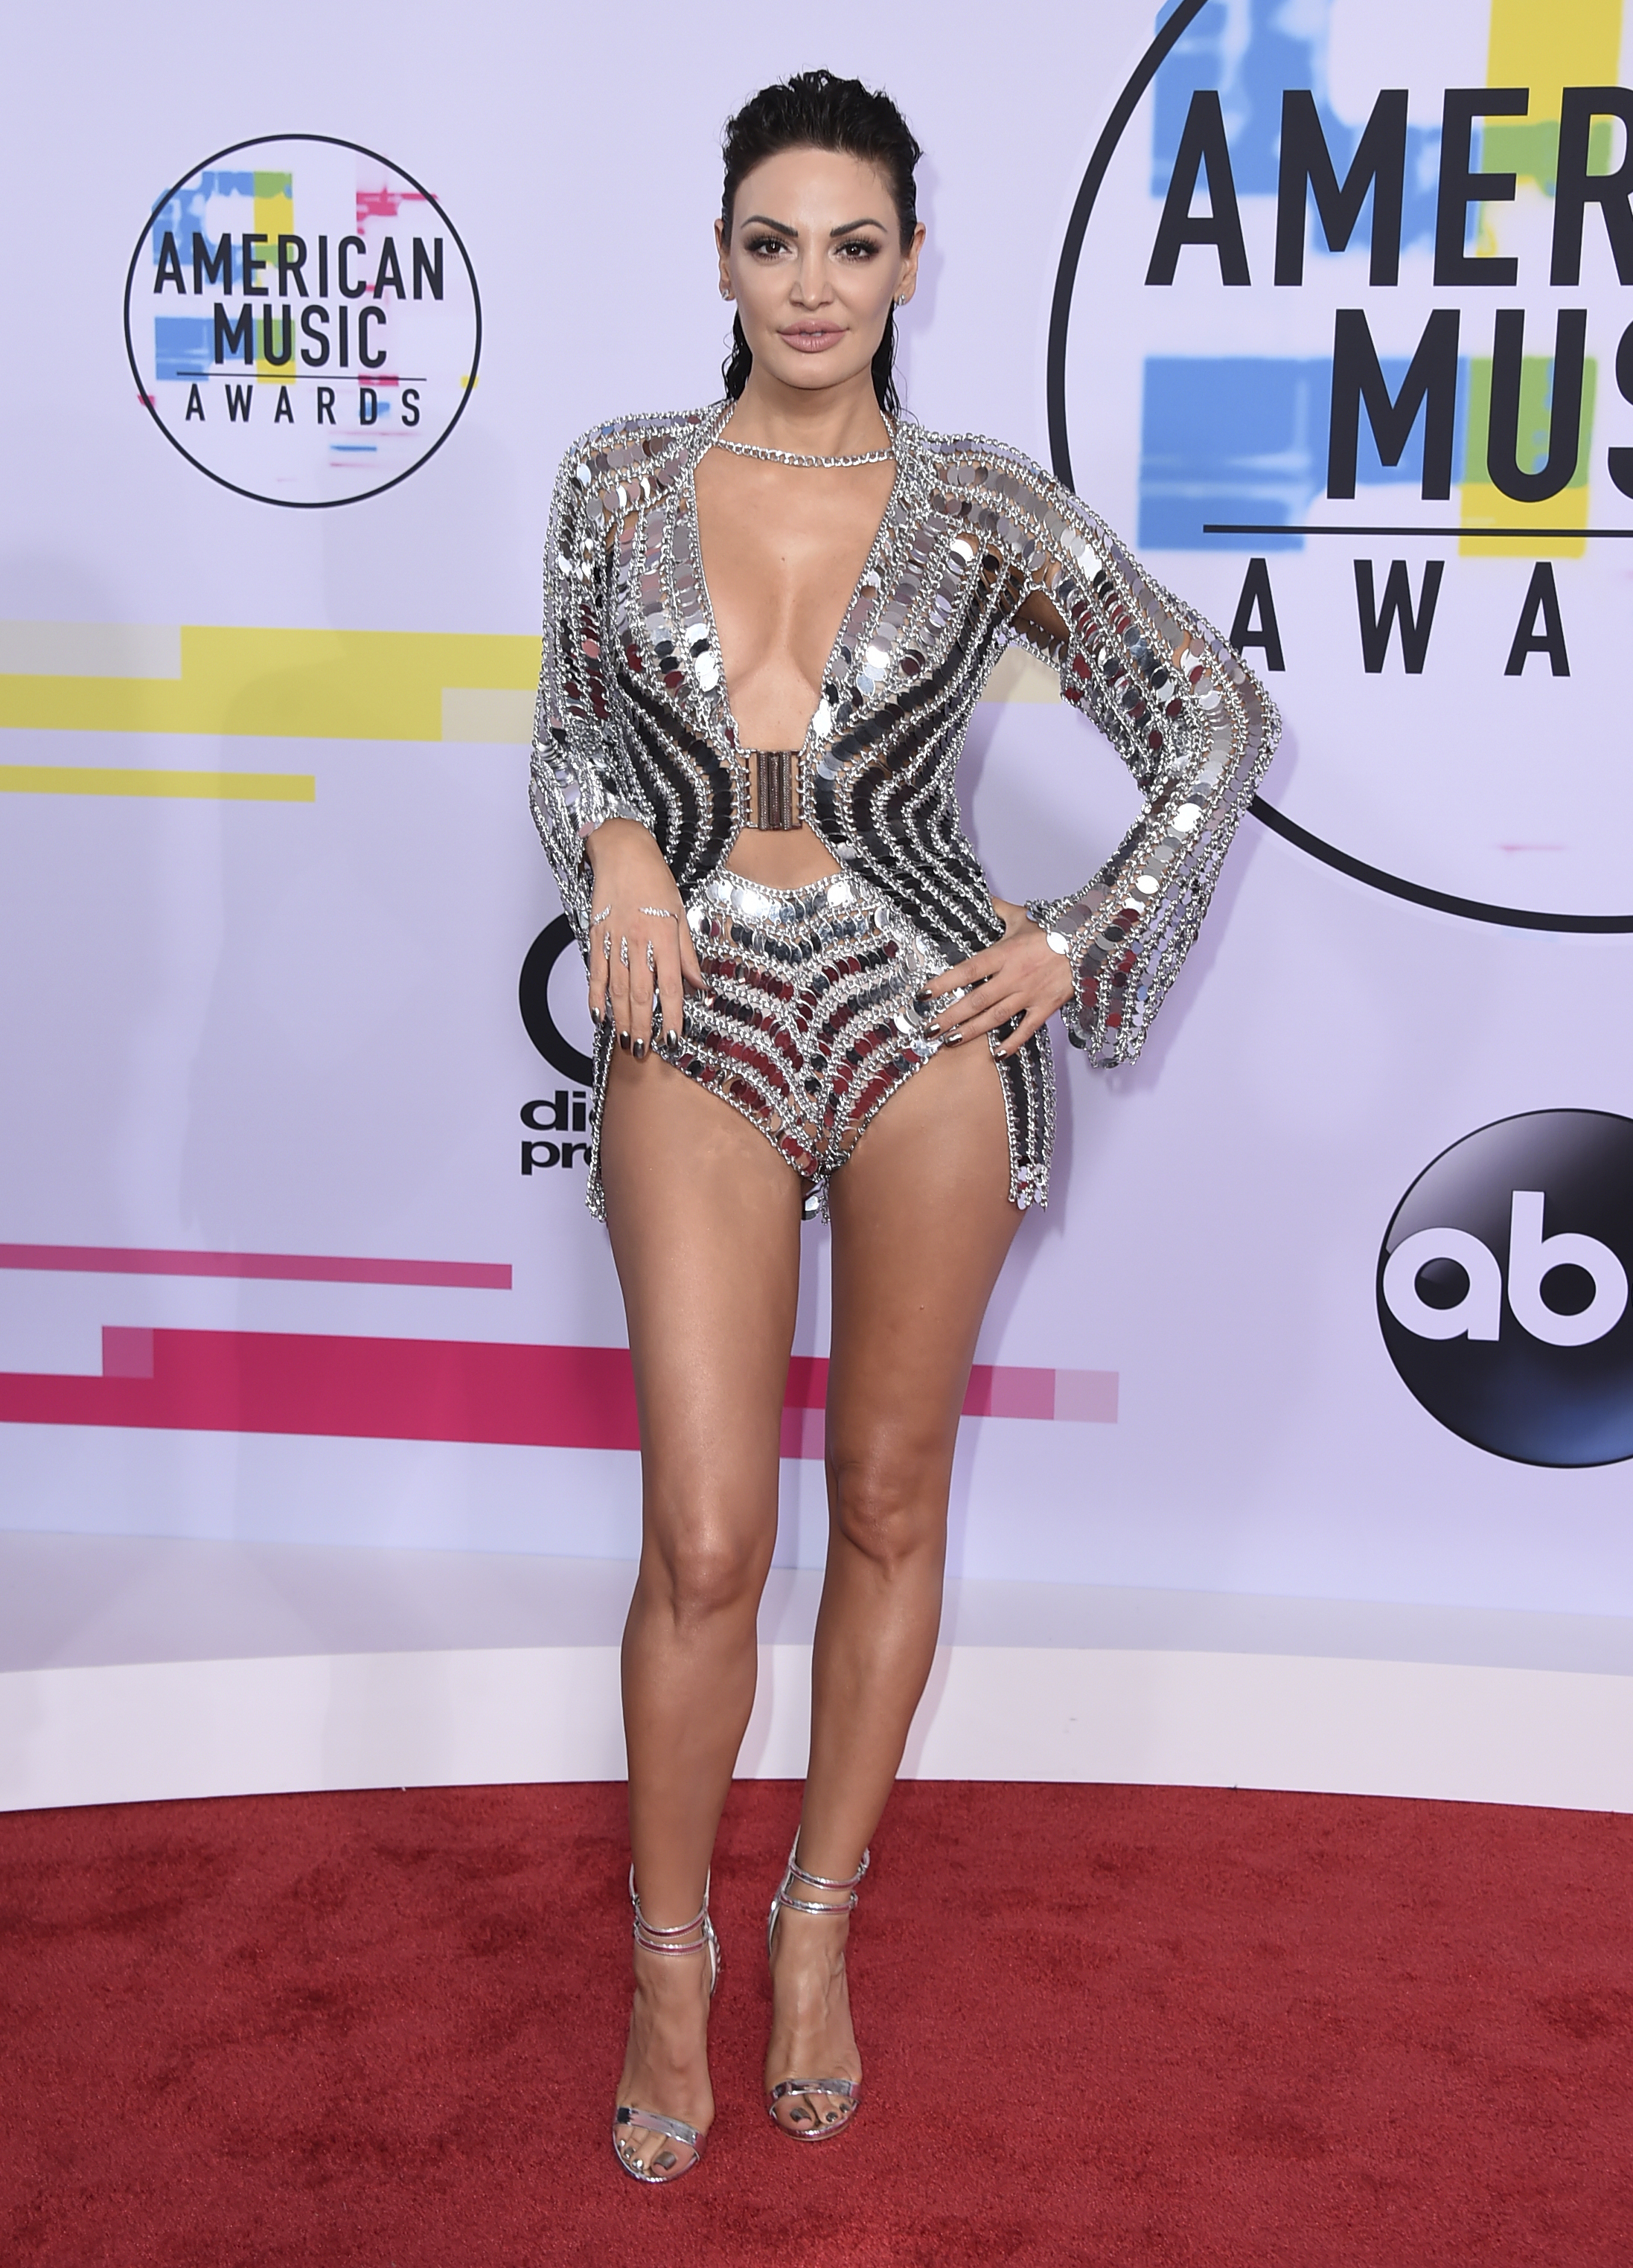 <div class='meta'><div class='origin-logo' data-origin='none'></div><span class='caption-text' data-credit='Jordan Strauss/Invision/AP'>Bleona Qereti arrives at the American Music Awards at the Microsoft Theater on Sunday, Nov. 19, 2017, in Los Angeles.</span></div>